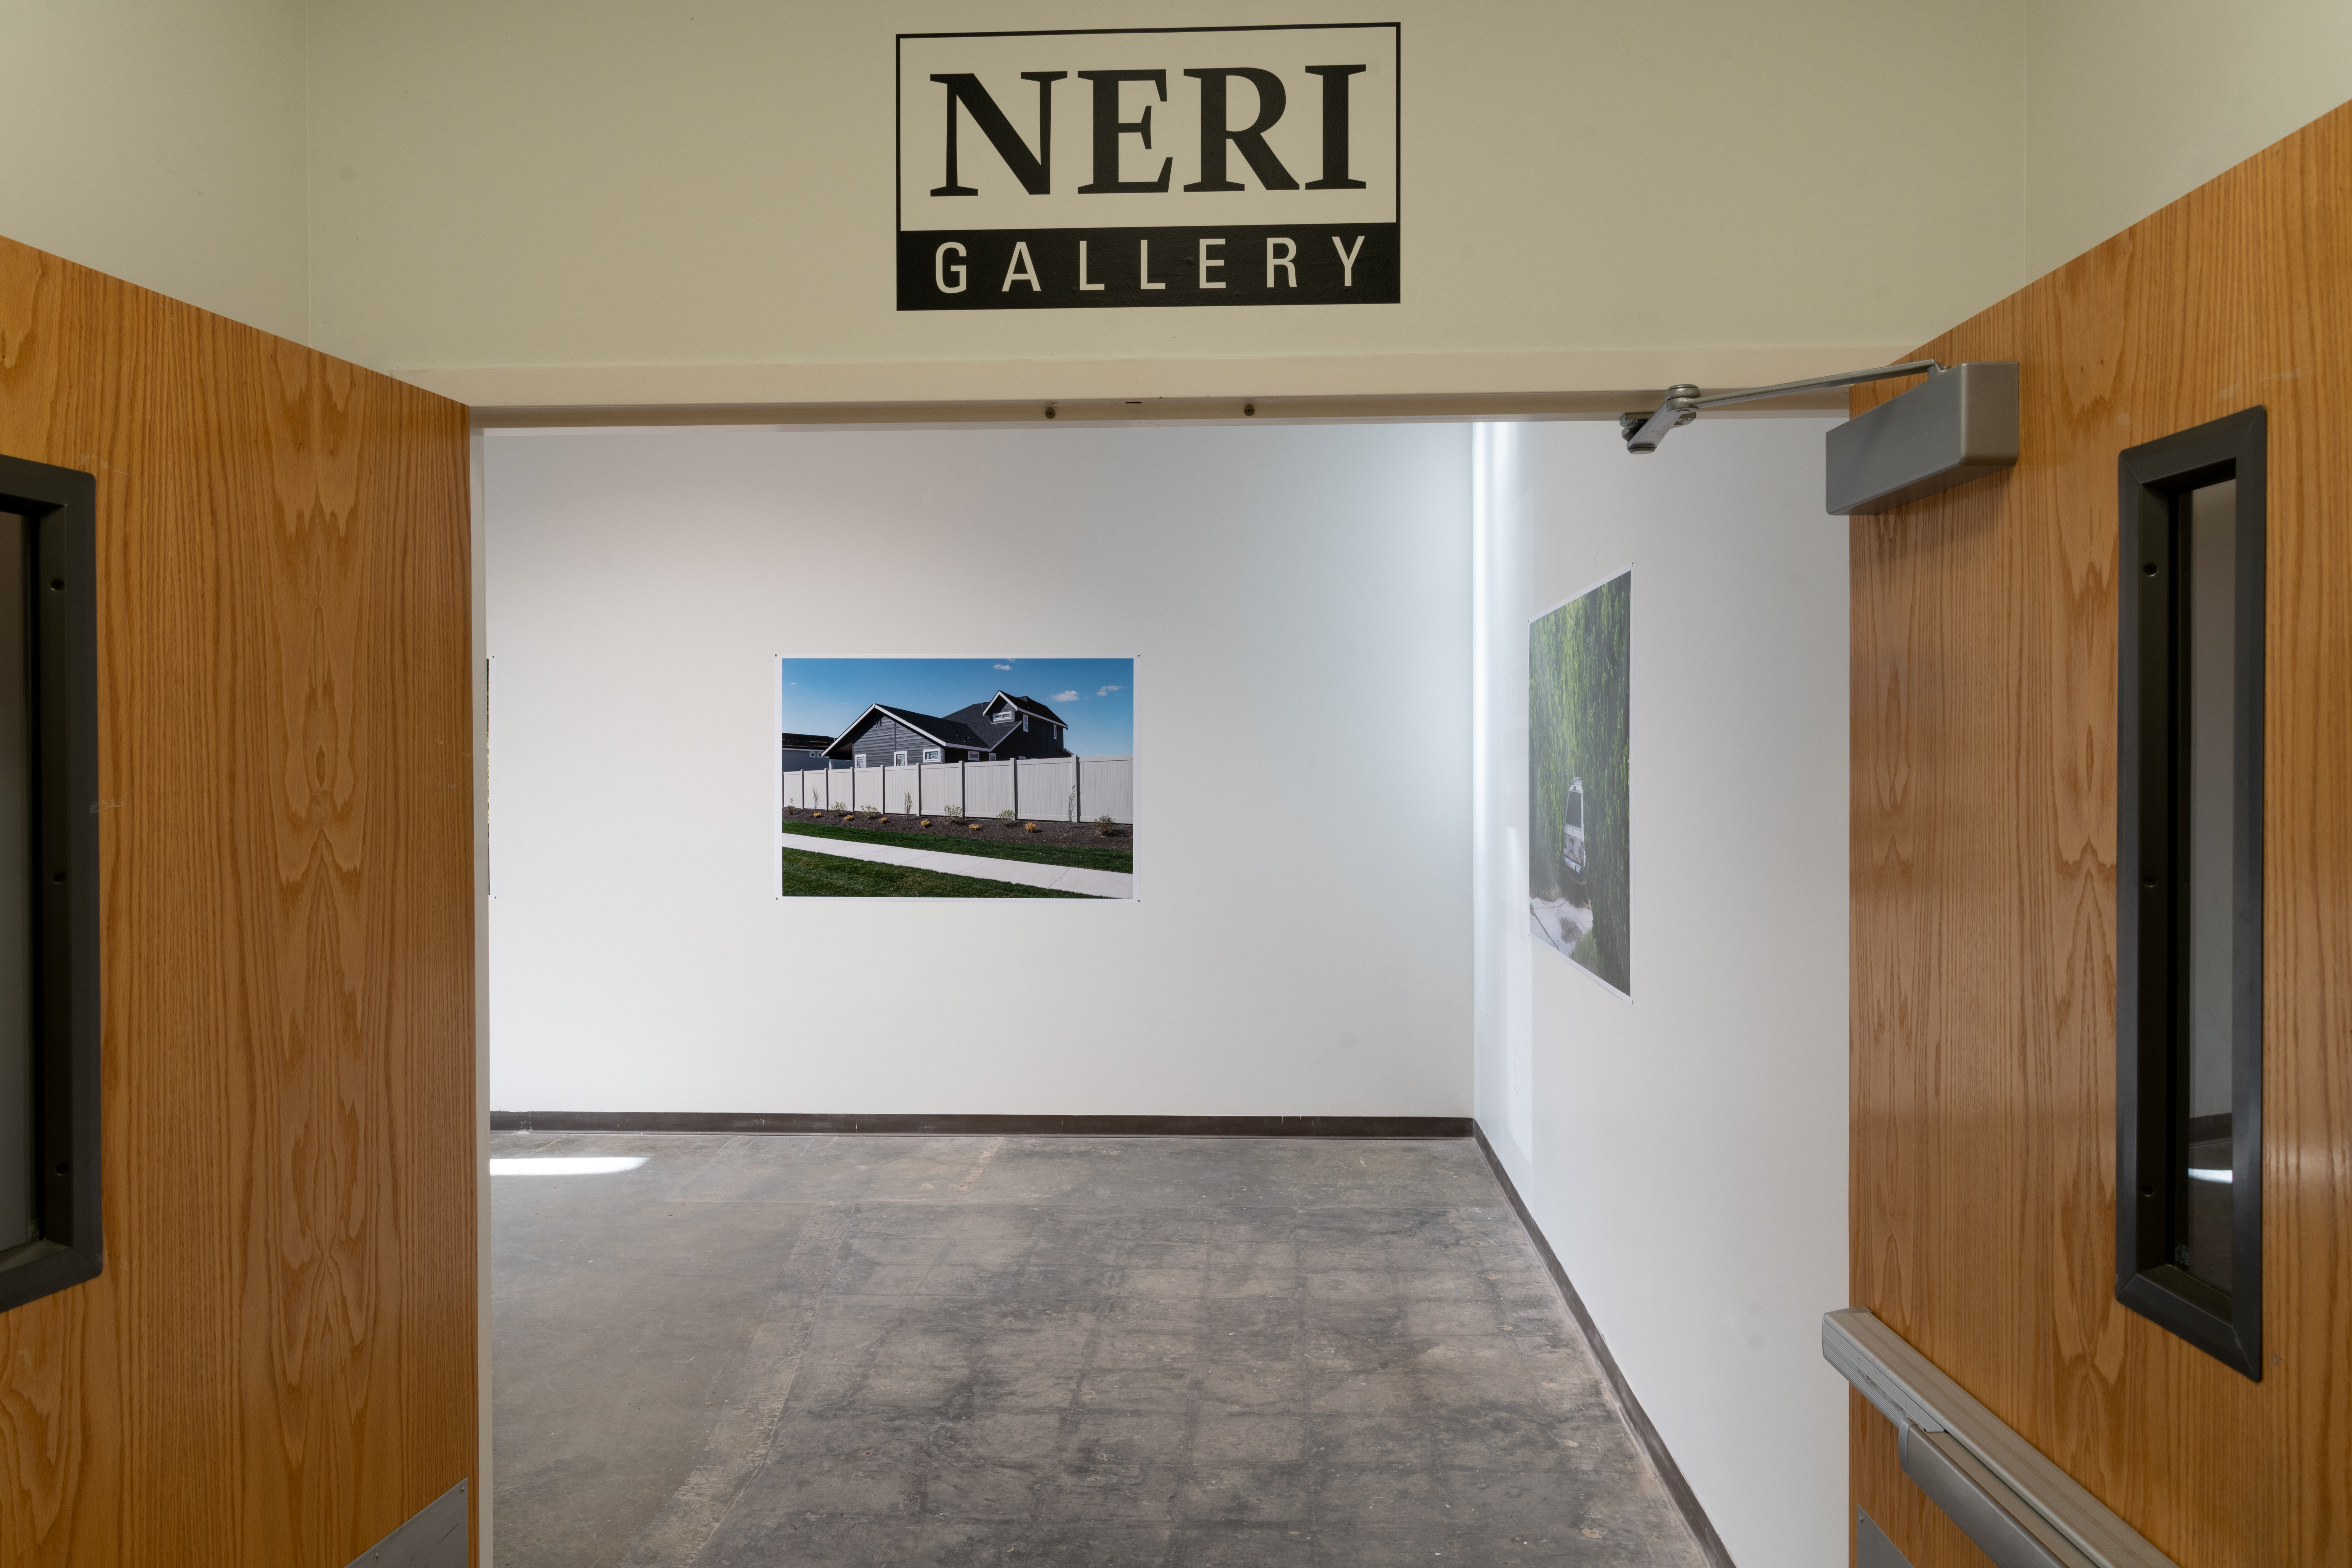 Hao Zhang photography installation, entry of the Neri Gallery.